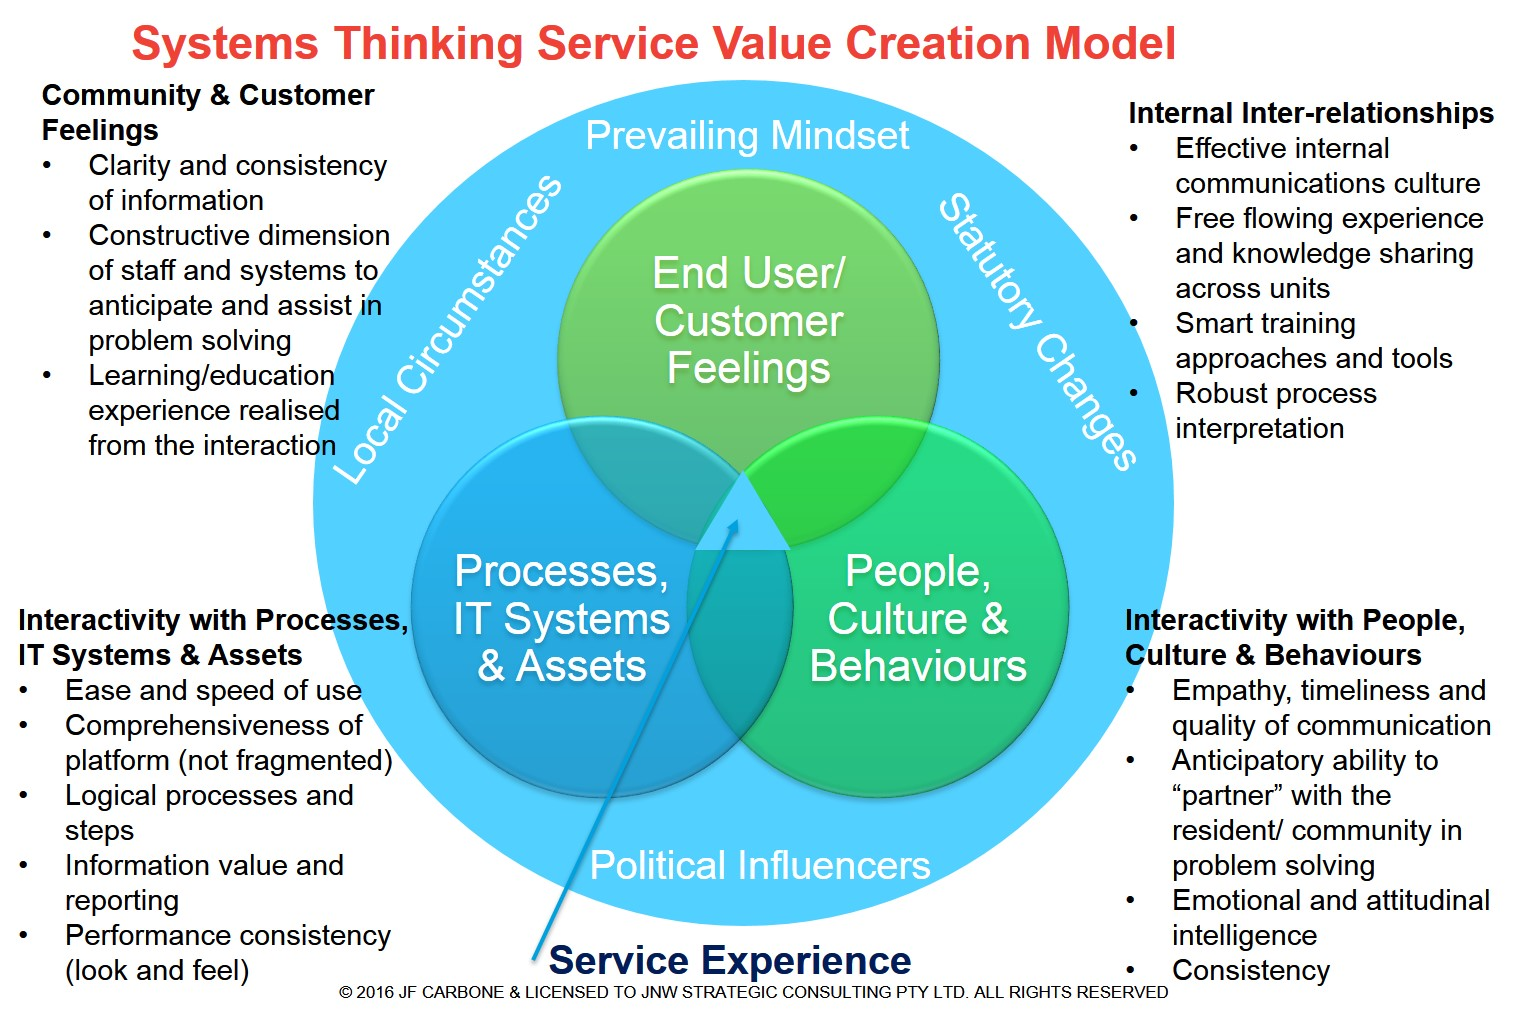 Systems Thinking Service Value Creation Model